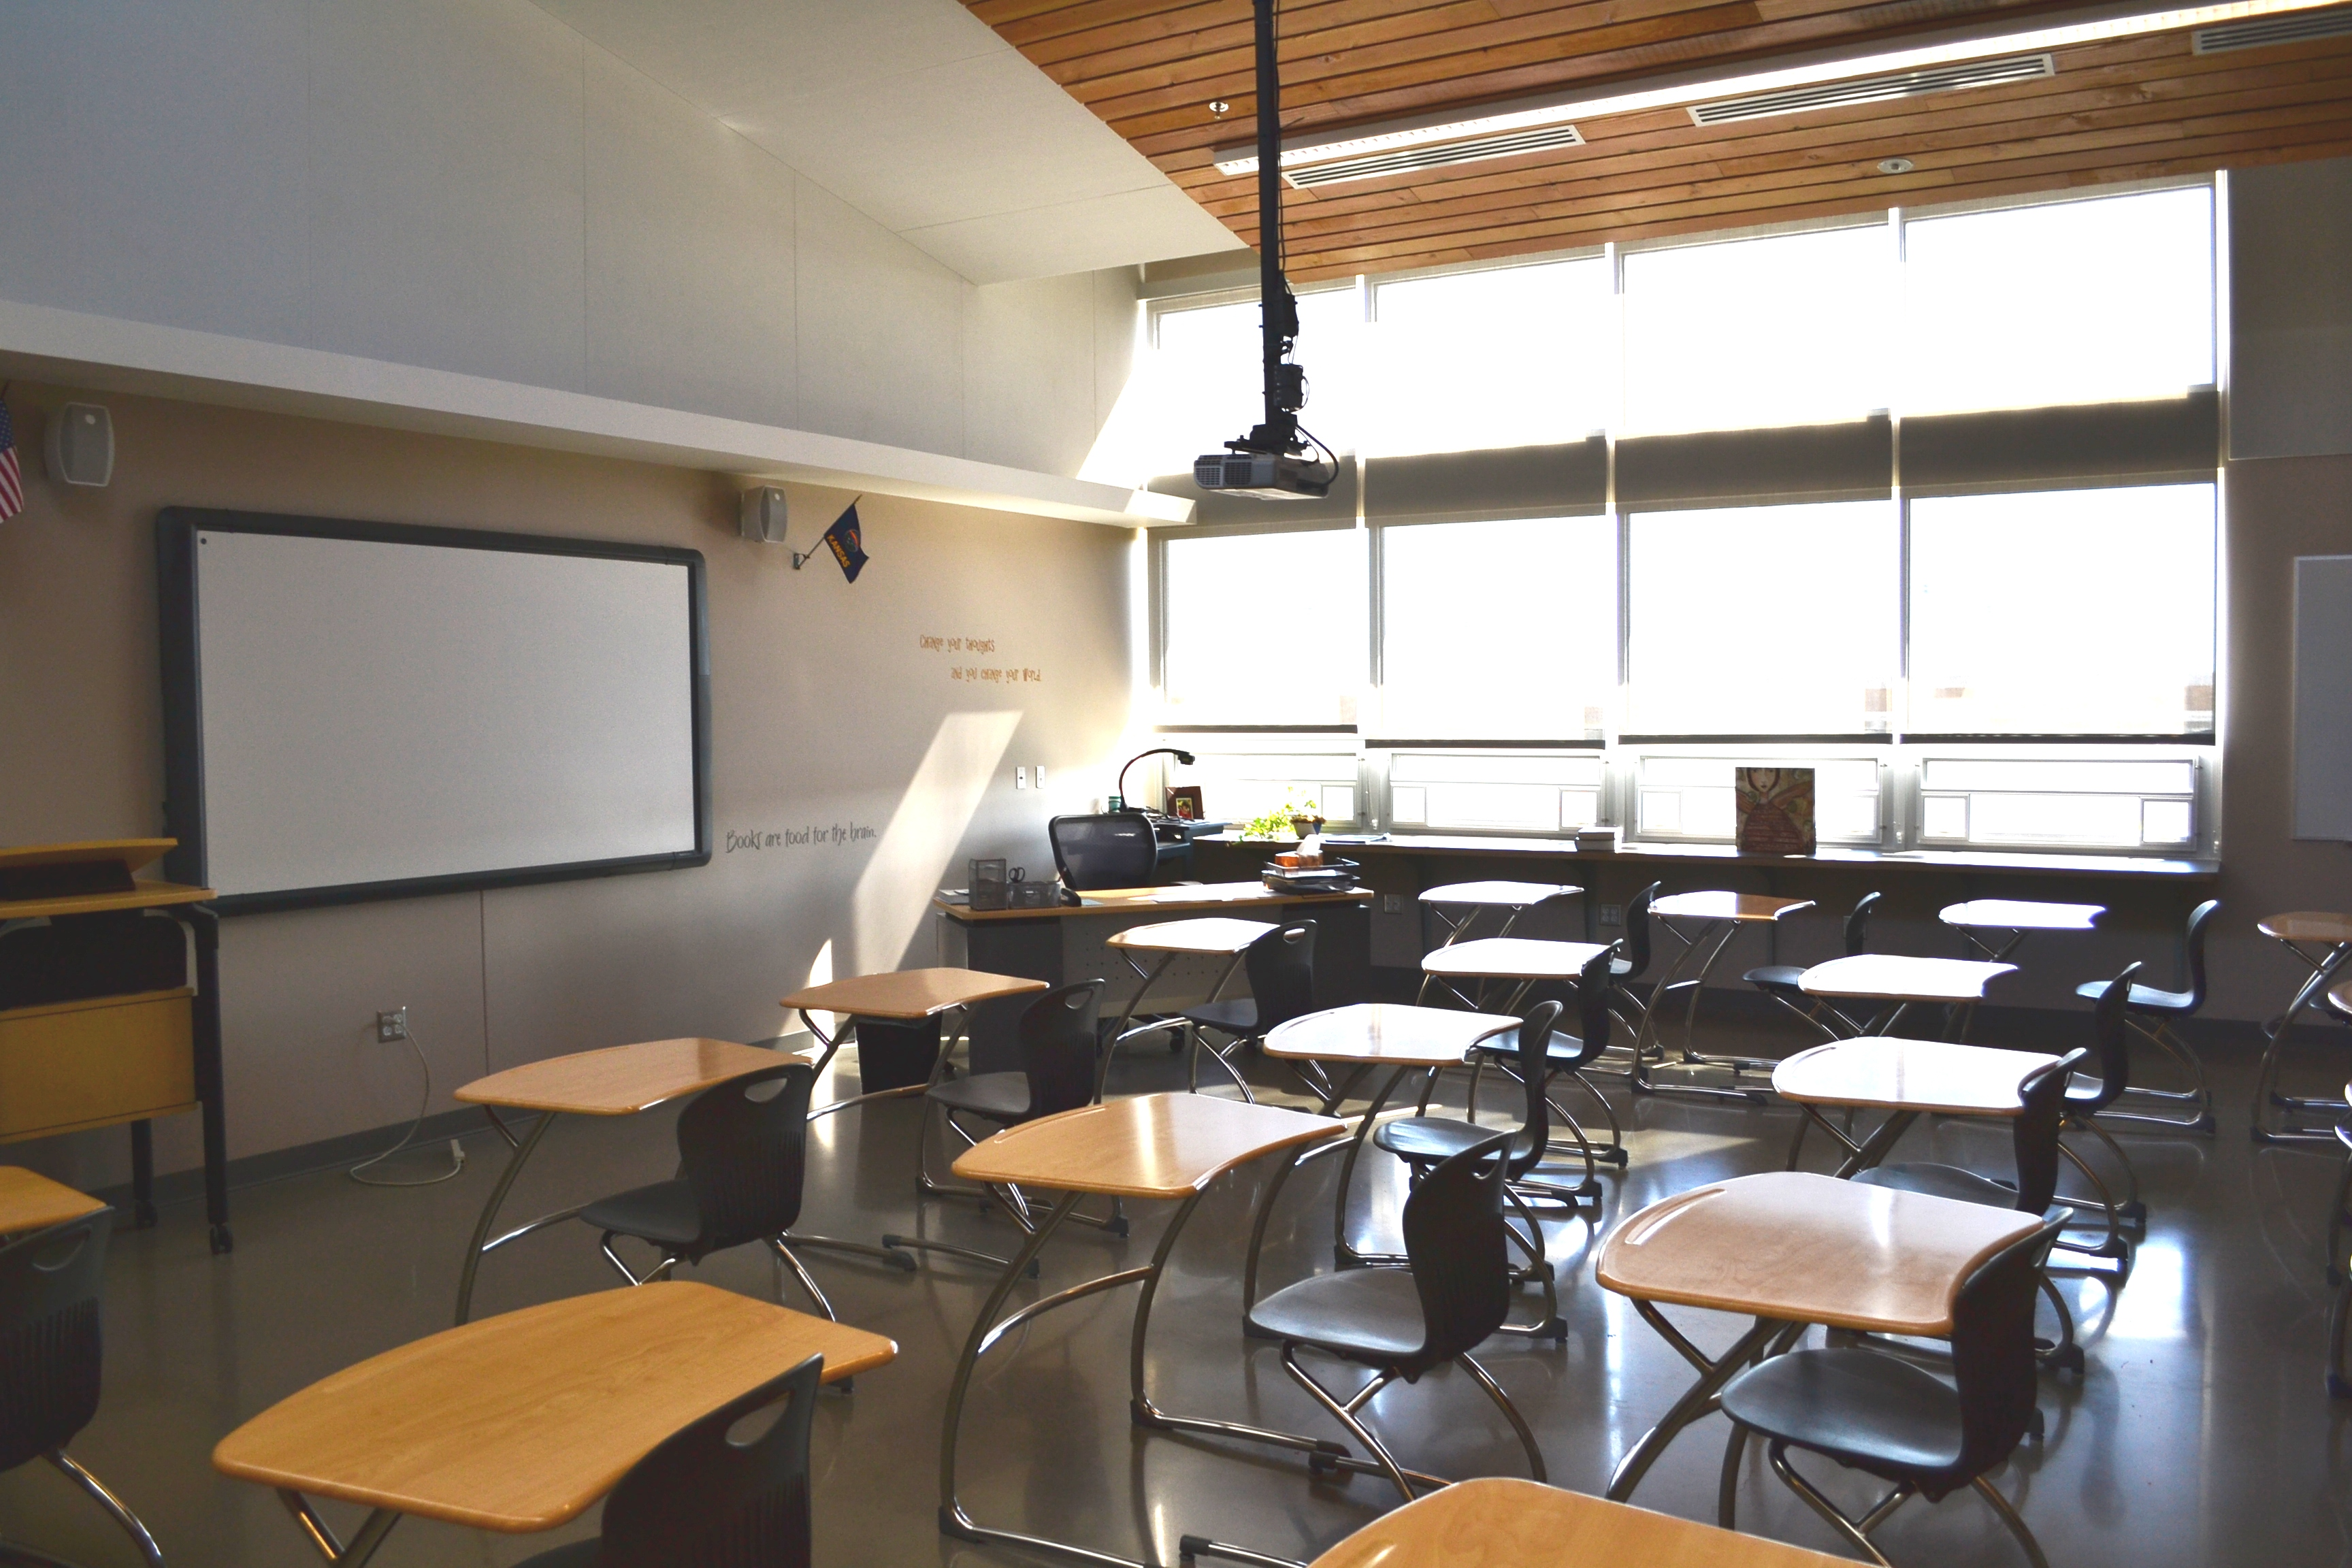 Classroom Design For High School ~ Designing green schools that advance public health